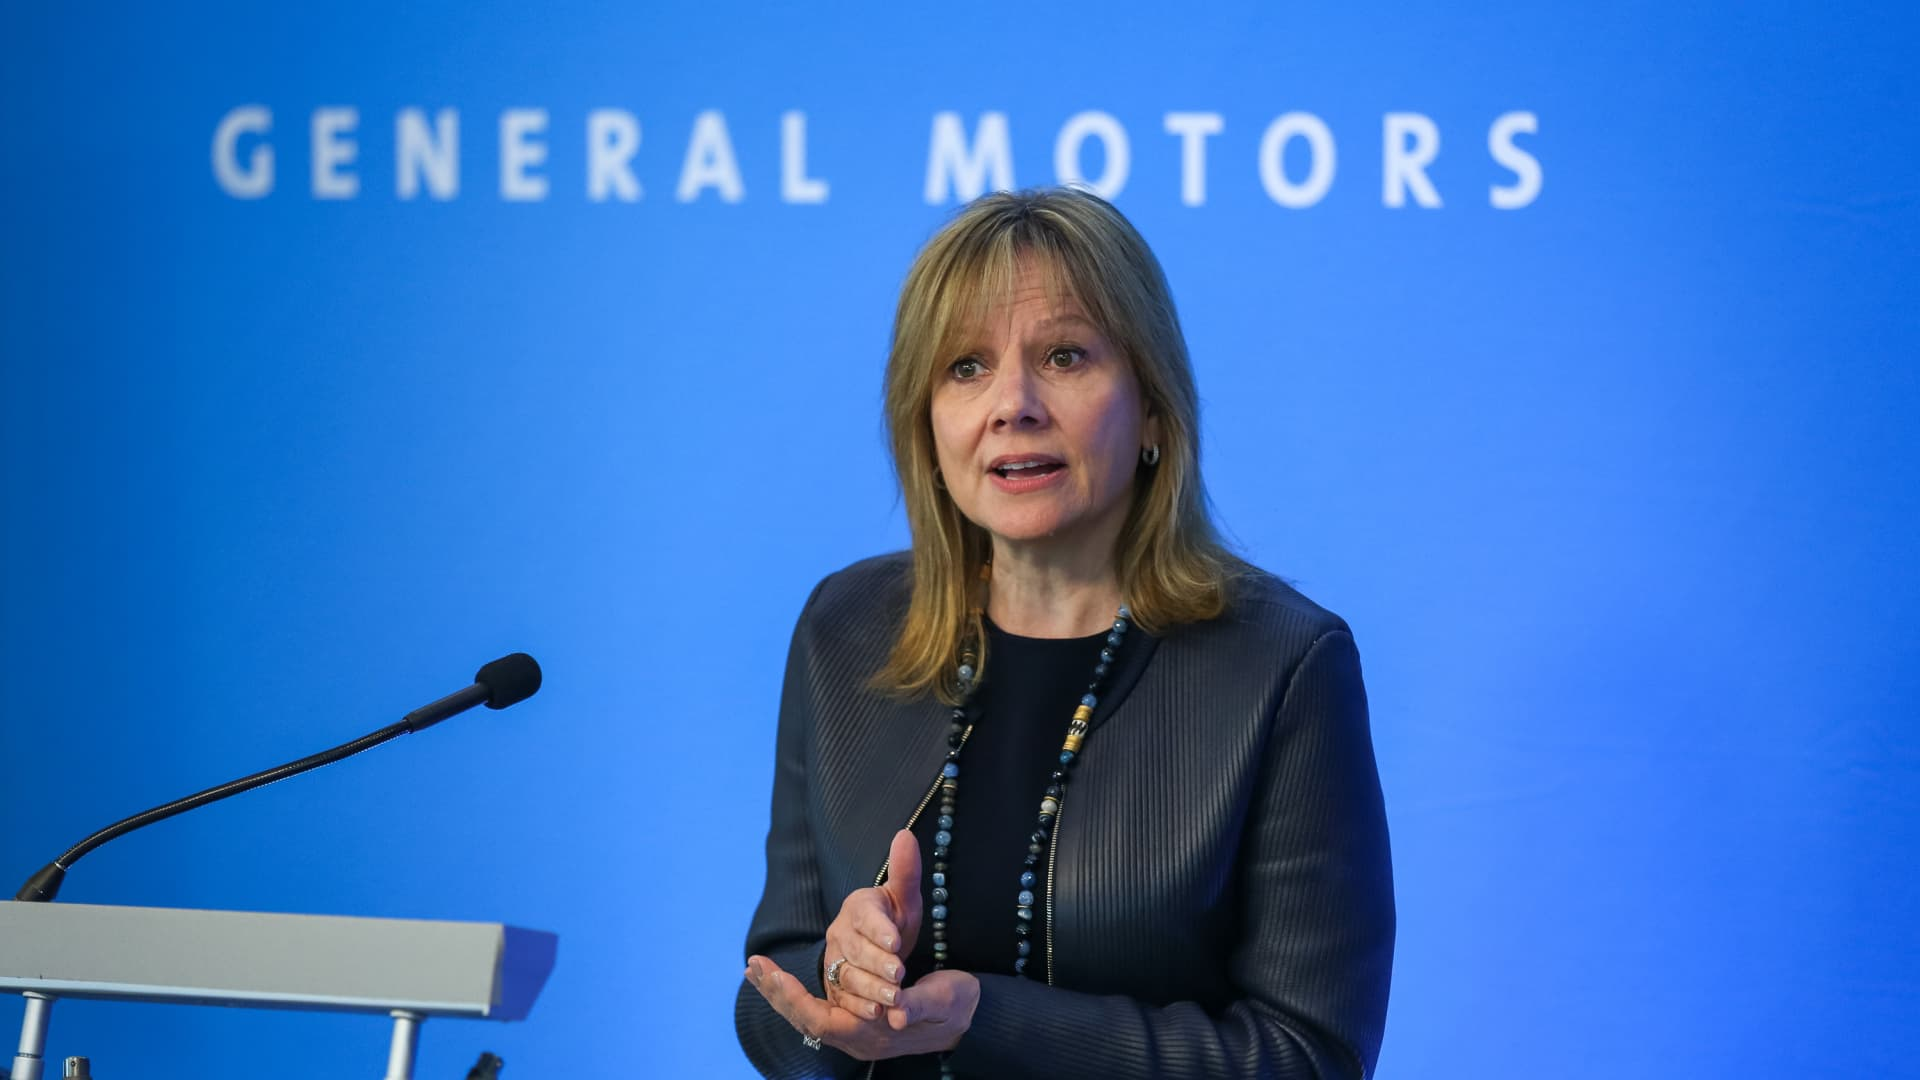 GM CEO Mary Barra talks with media prior to the start of the 2017 General Motors Company Annual Meeting of Stockholders Tuesday, June 6, 2017 at GM Global Headquarters in Detroit, Michigan.